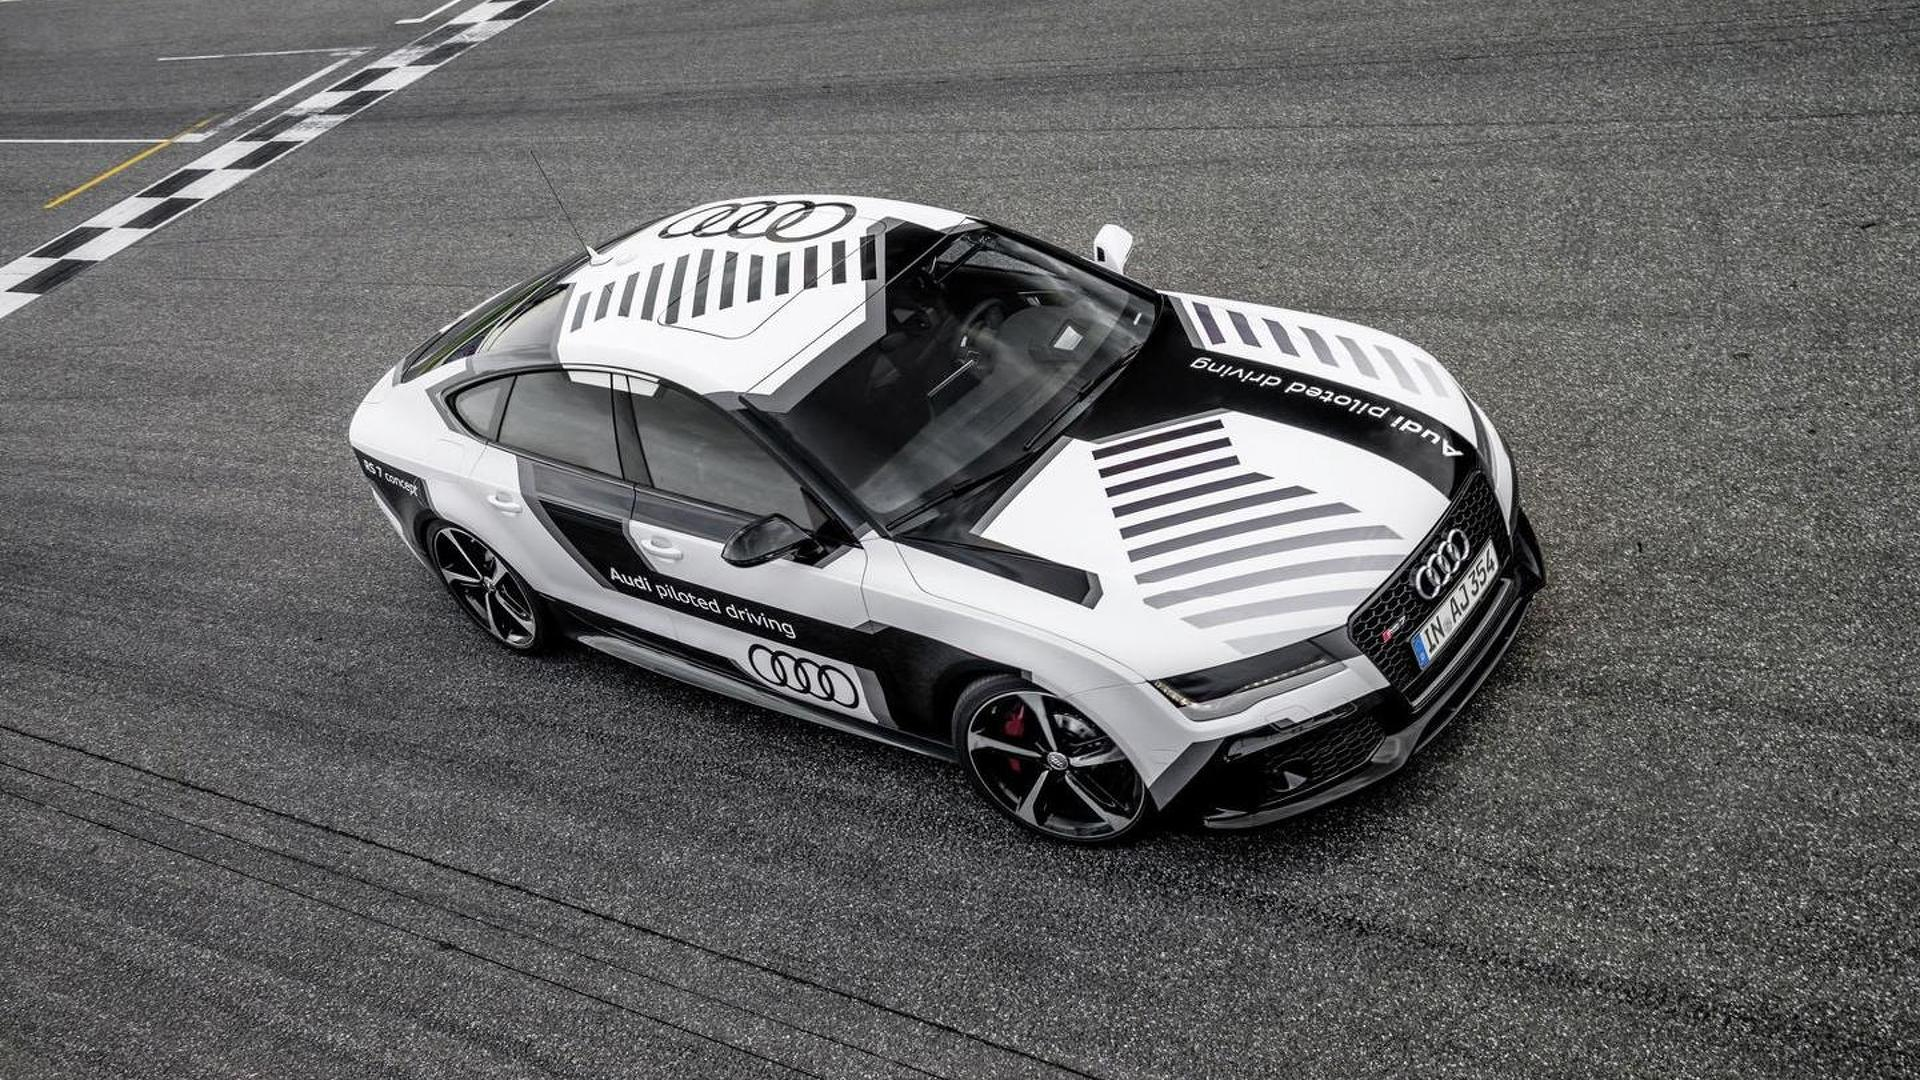 Концепт Audi RS7 Piloted Driving